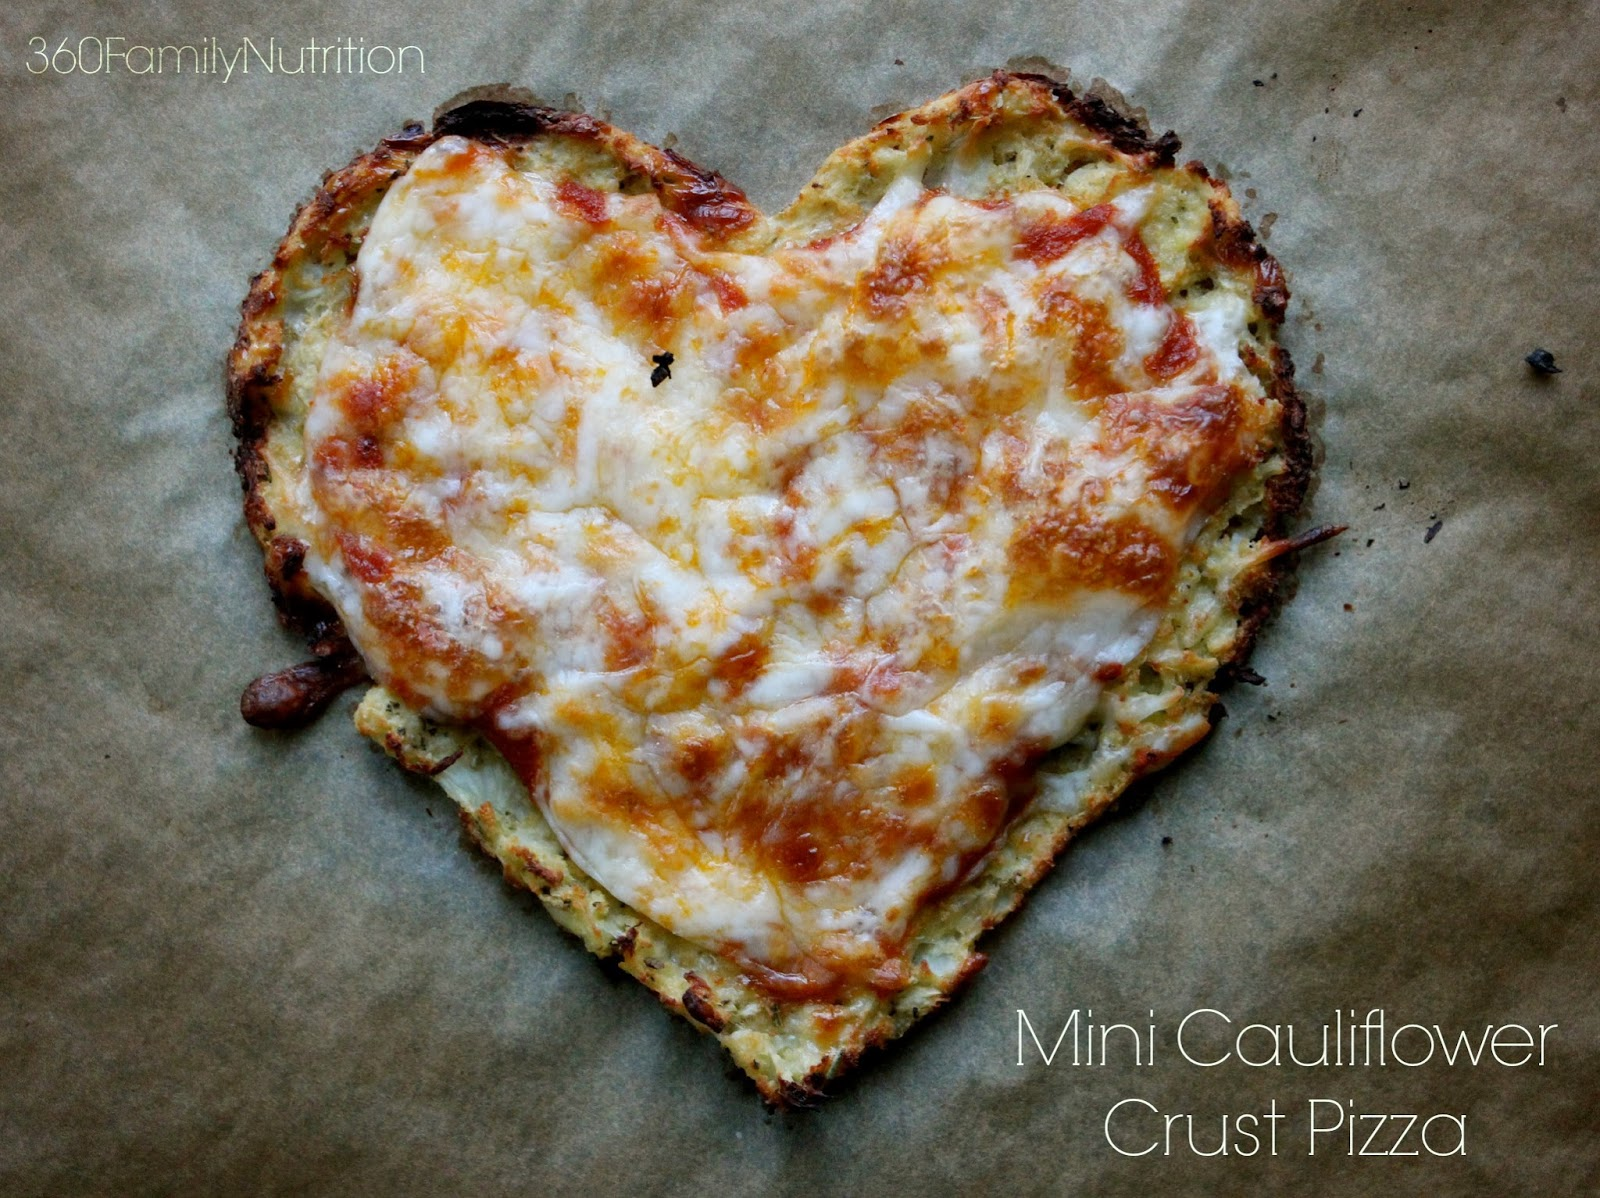 360FamilyNutrition: Mini Cauliflower Crust Pizza